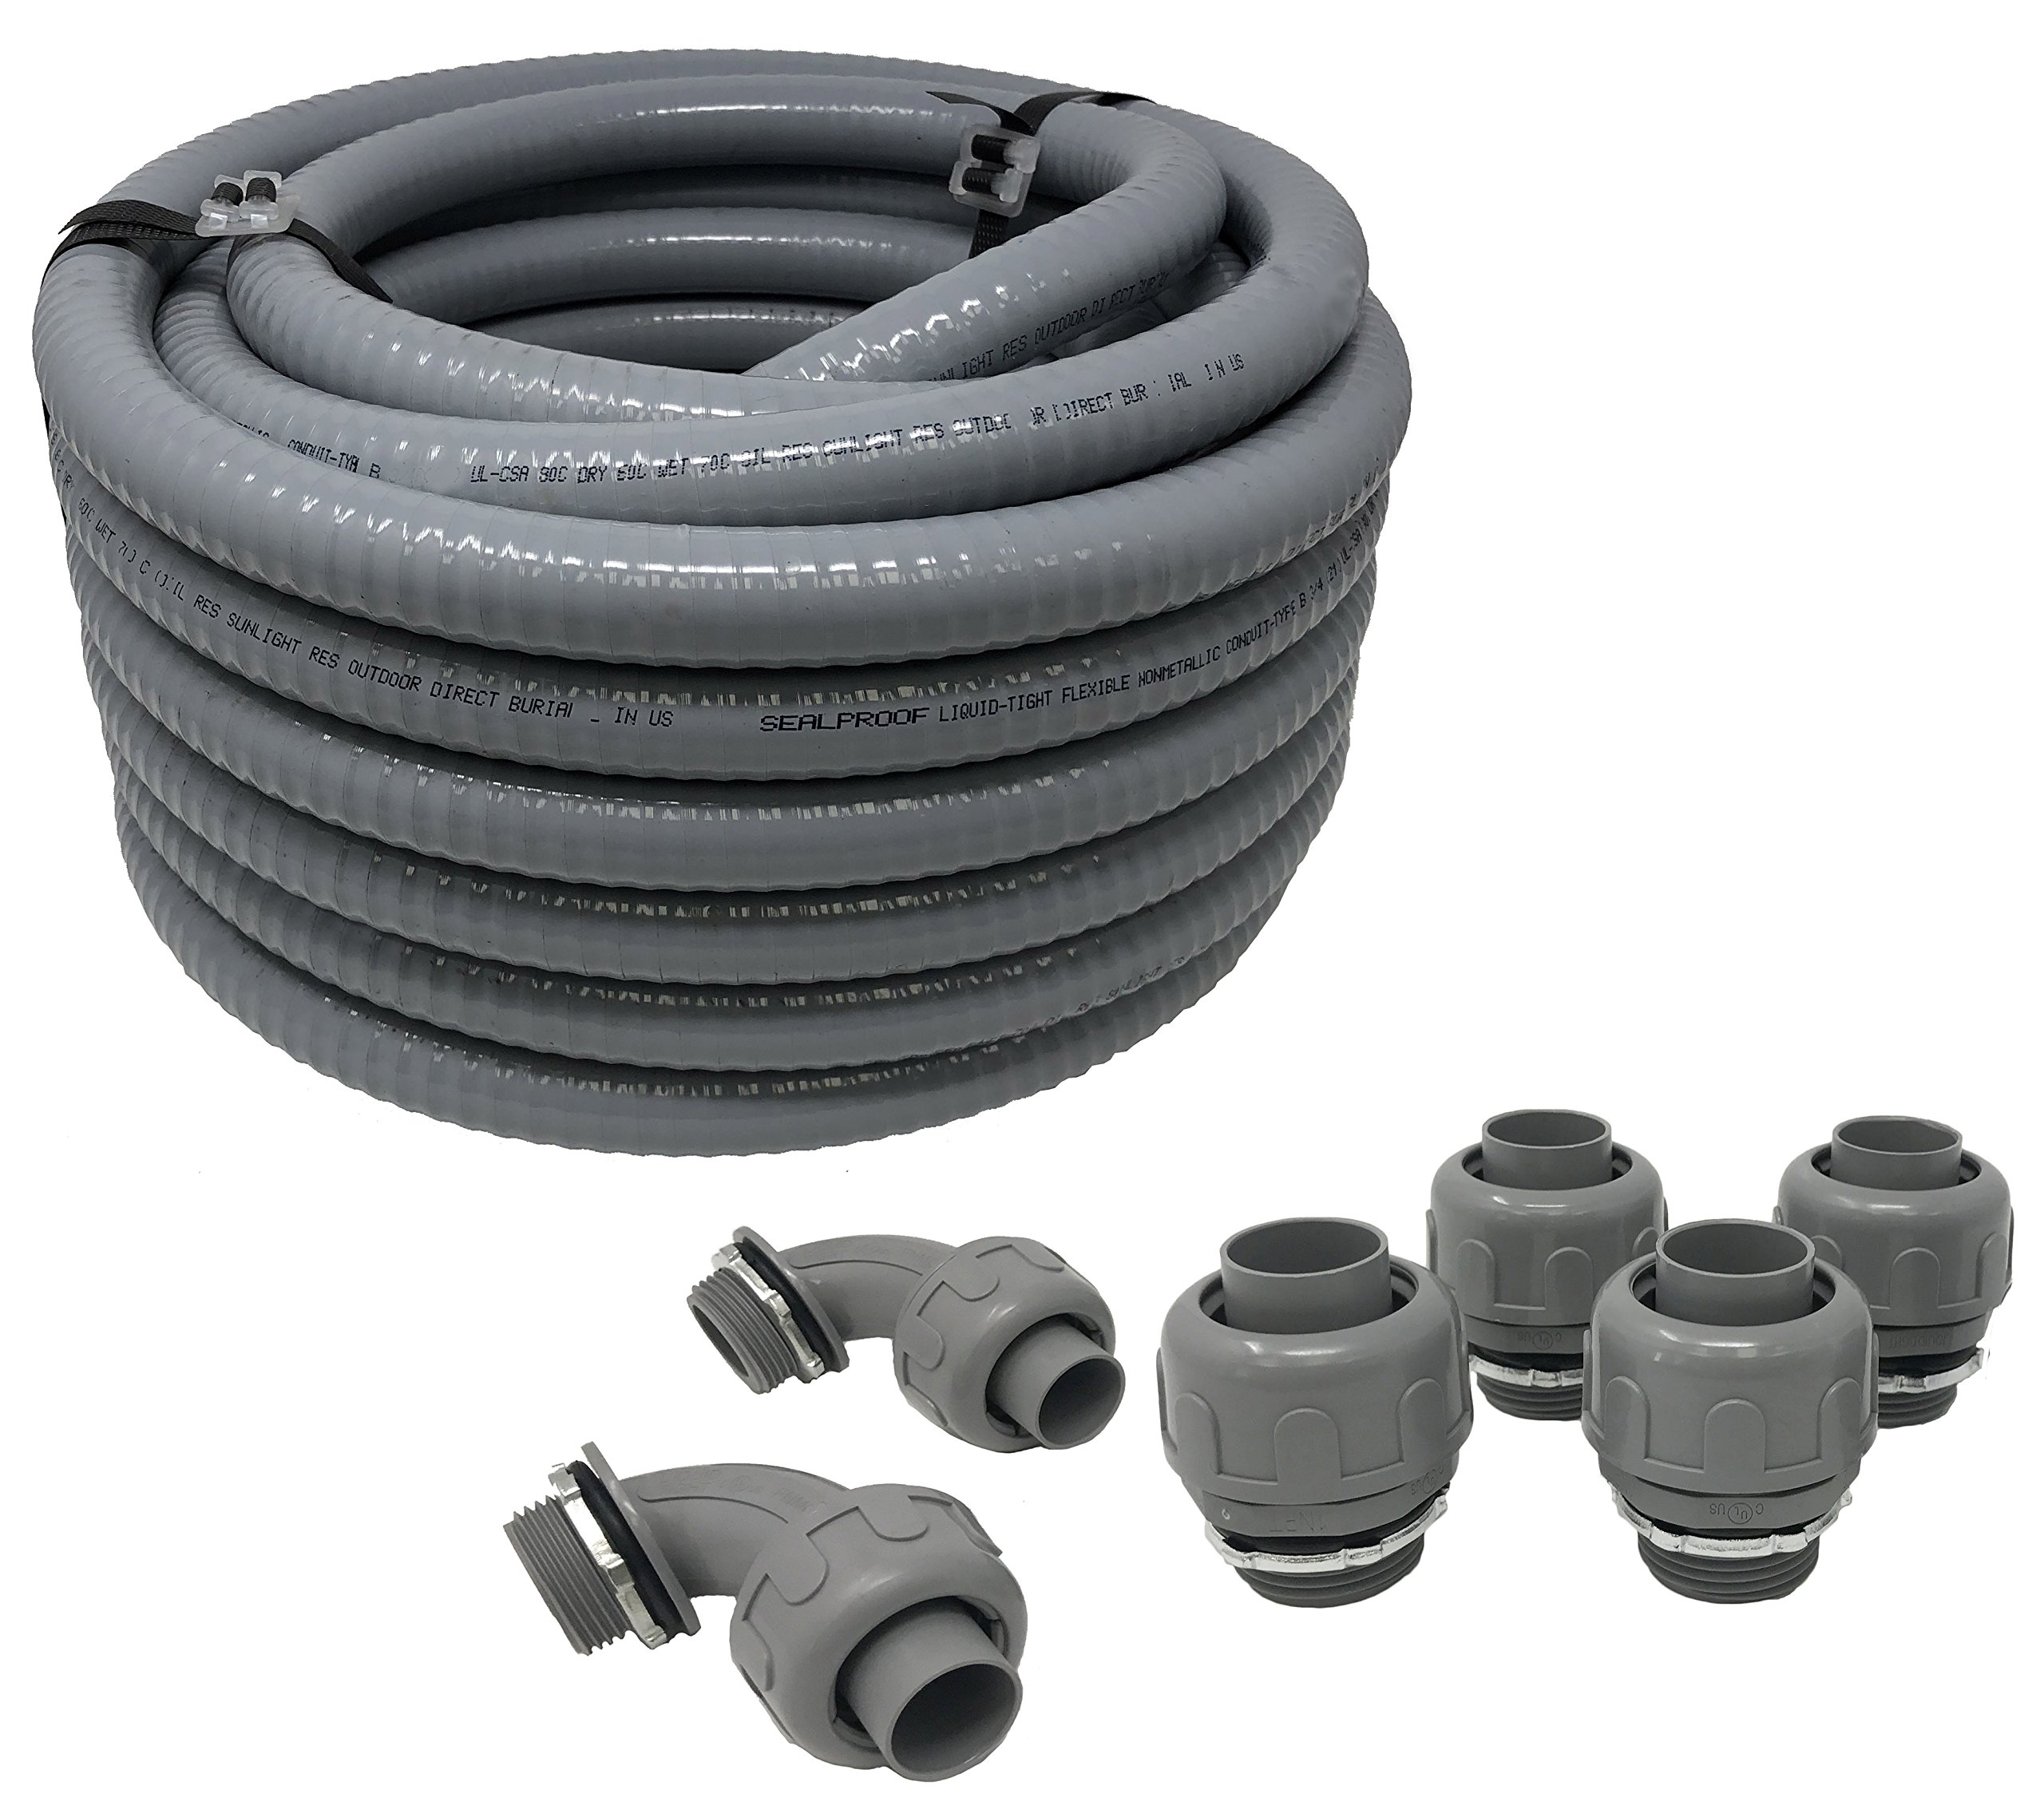 Sealproof Non-metallic Liquid-Tight Conduit and Connector Kit, 1-Inch 25 Foot Flexible Electrical Conduit Type B with 4 Straight and 2 90-Degree Conduit Connector Fittings, 1'' Dia